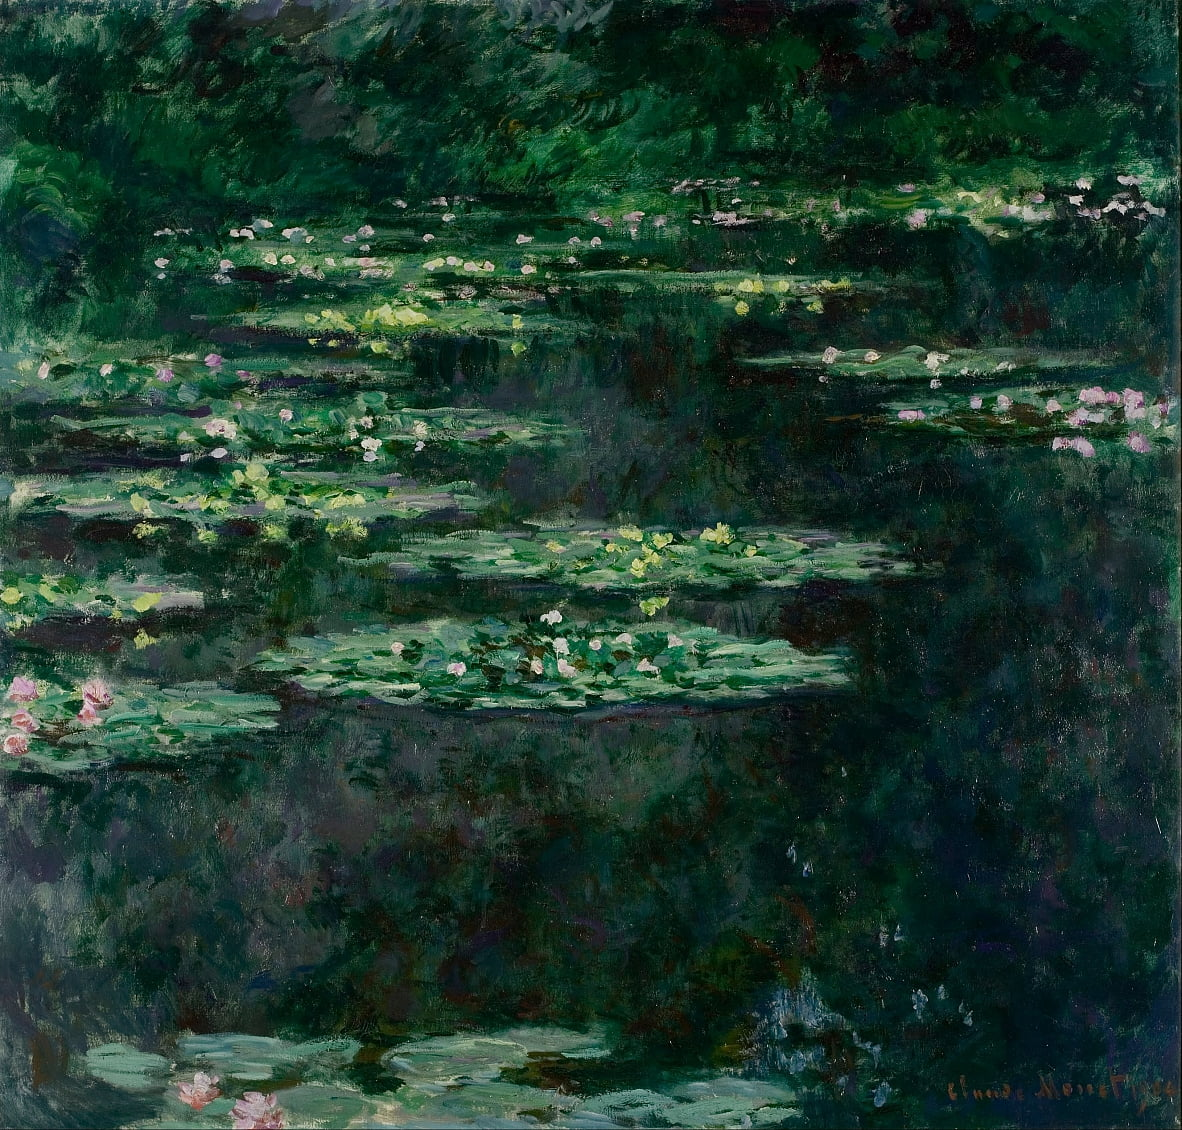 Ninfee da Claude Monet